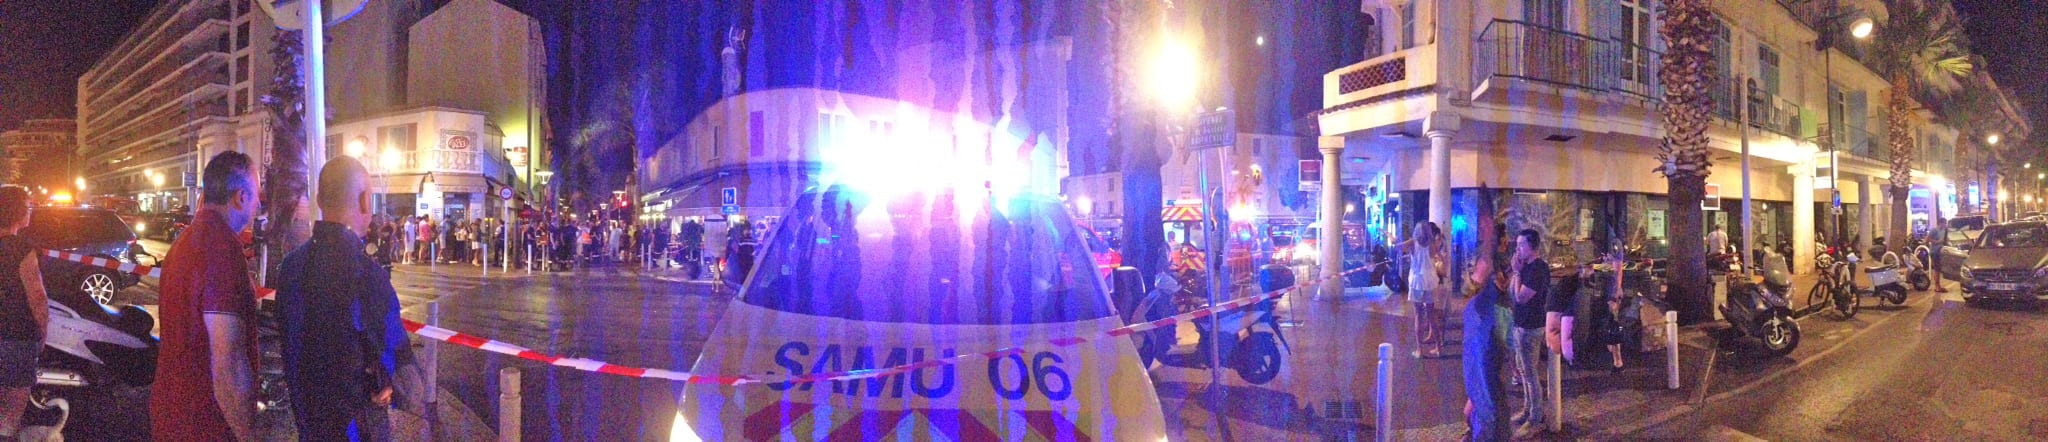 Area cordoned off with about 40 to 50 police, military and emergency vehicles in Juans-les-Pins Sunday evening around 10:30 pm. Photo: SS/Monaco Life